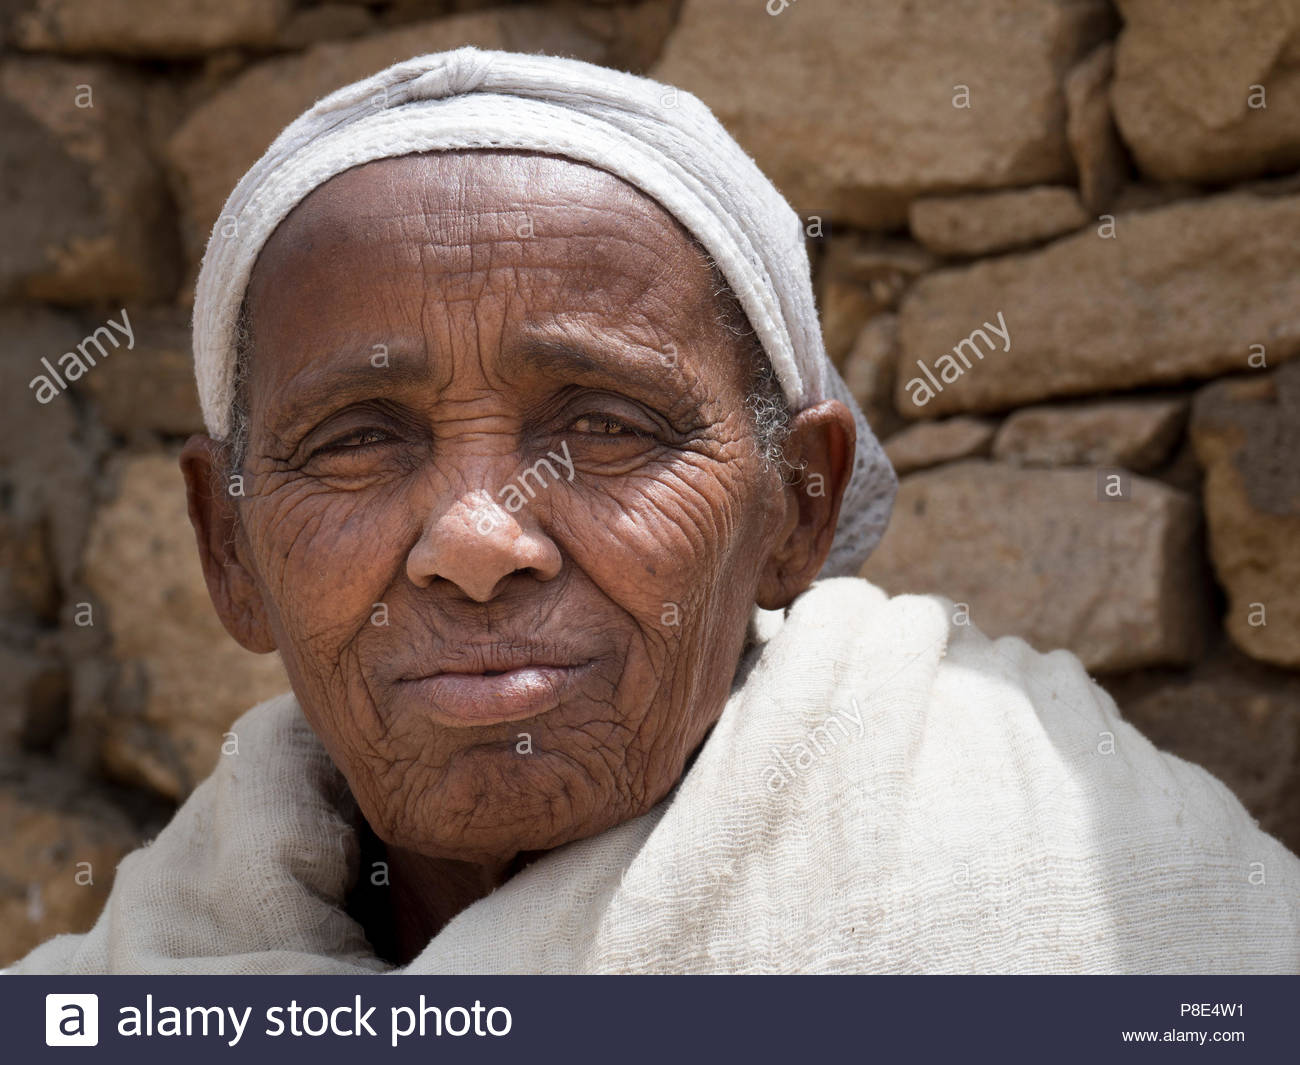 Old woman with wrinkles, white clothes, portrait, Ethiopia - Stock Image